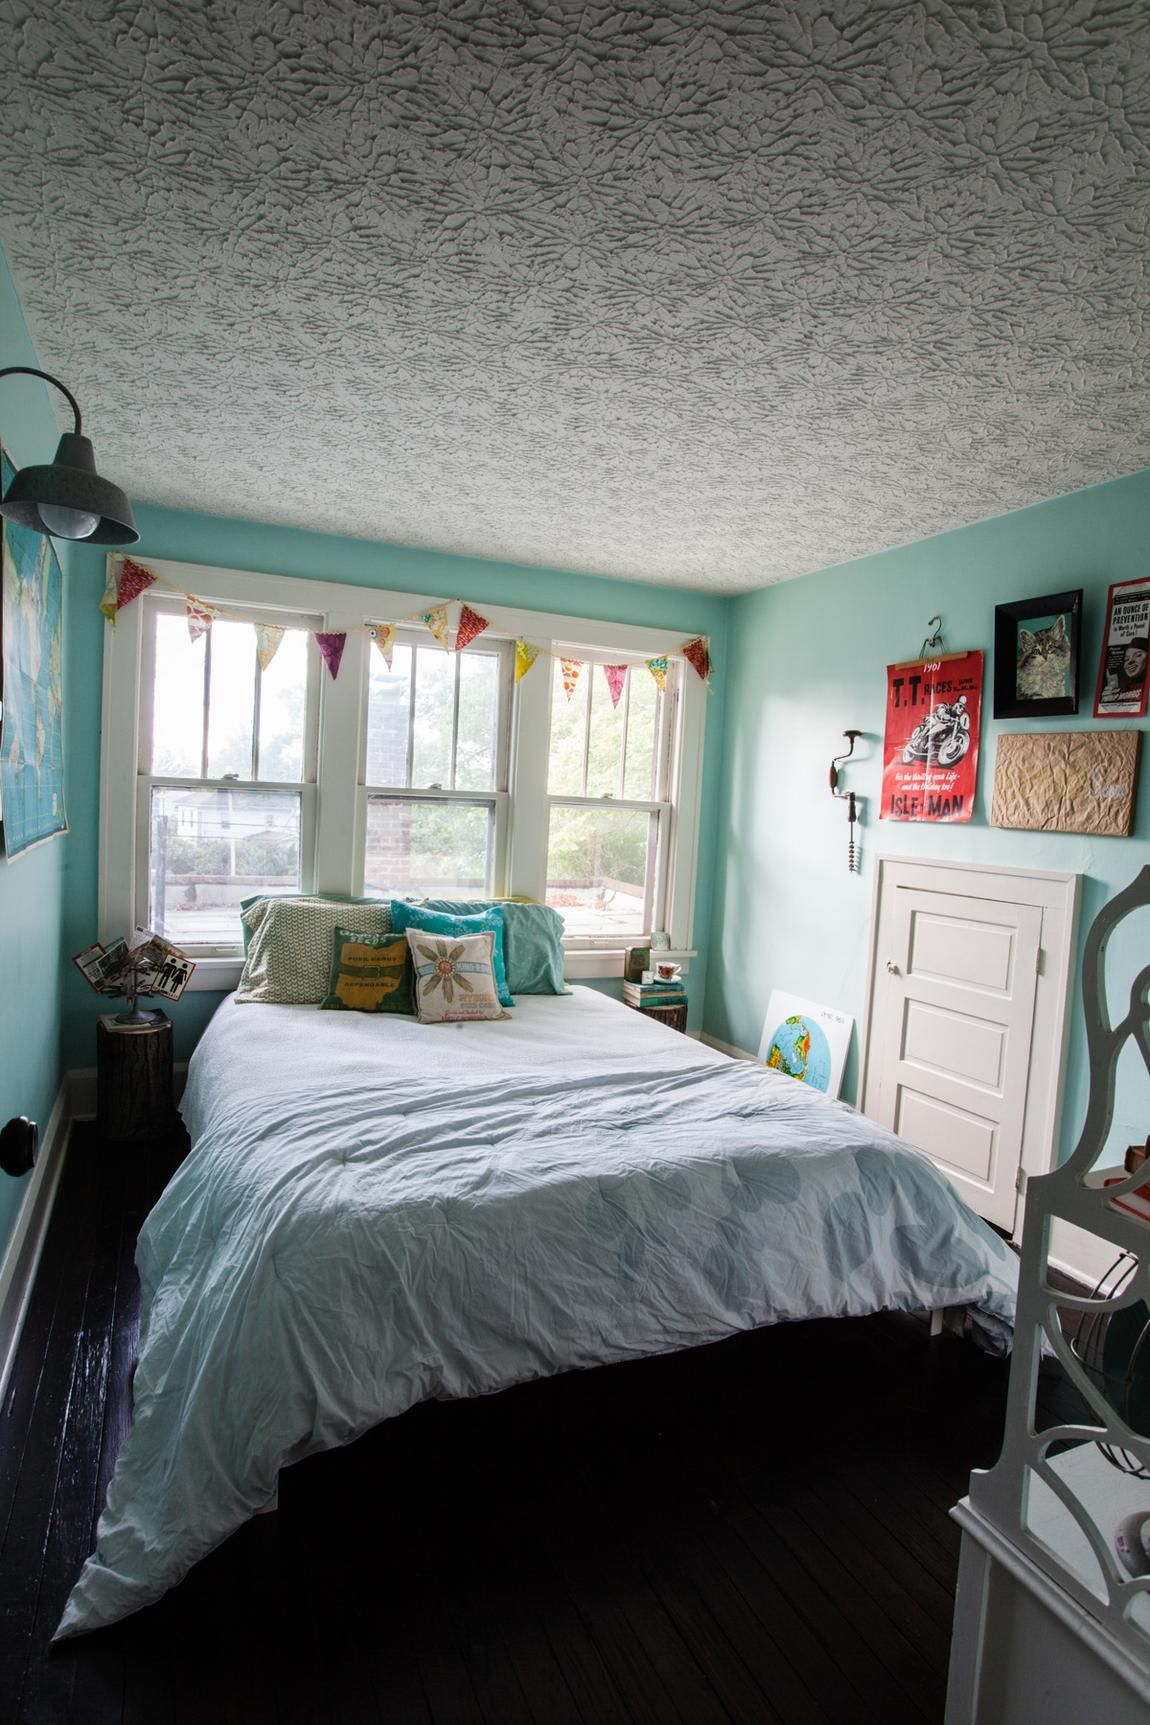 Our Budget Friendly Diy Travel Inspired Guest Room - Photography